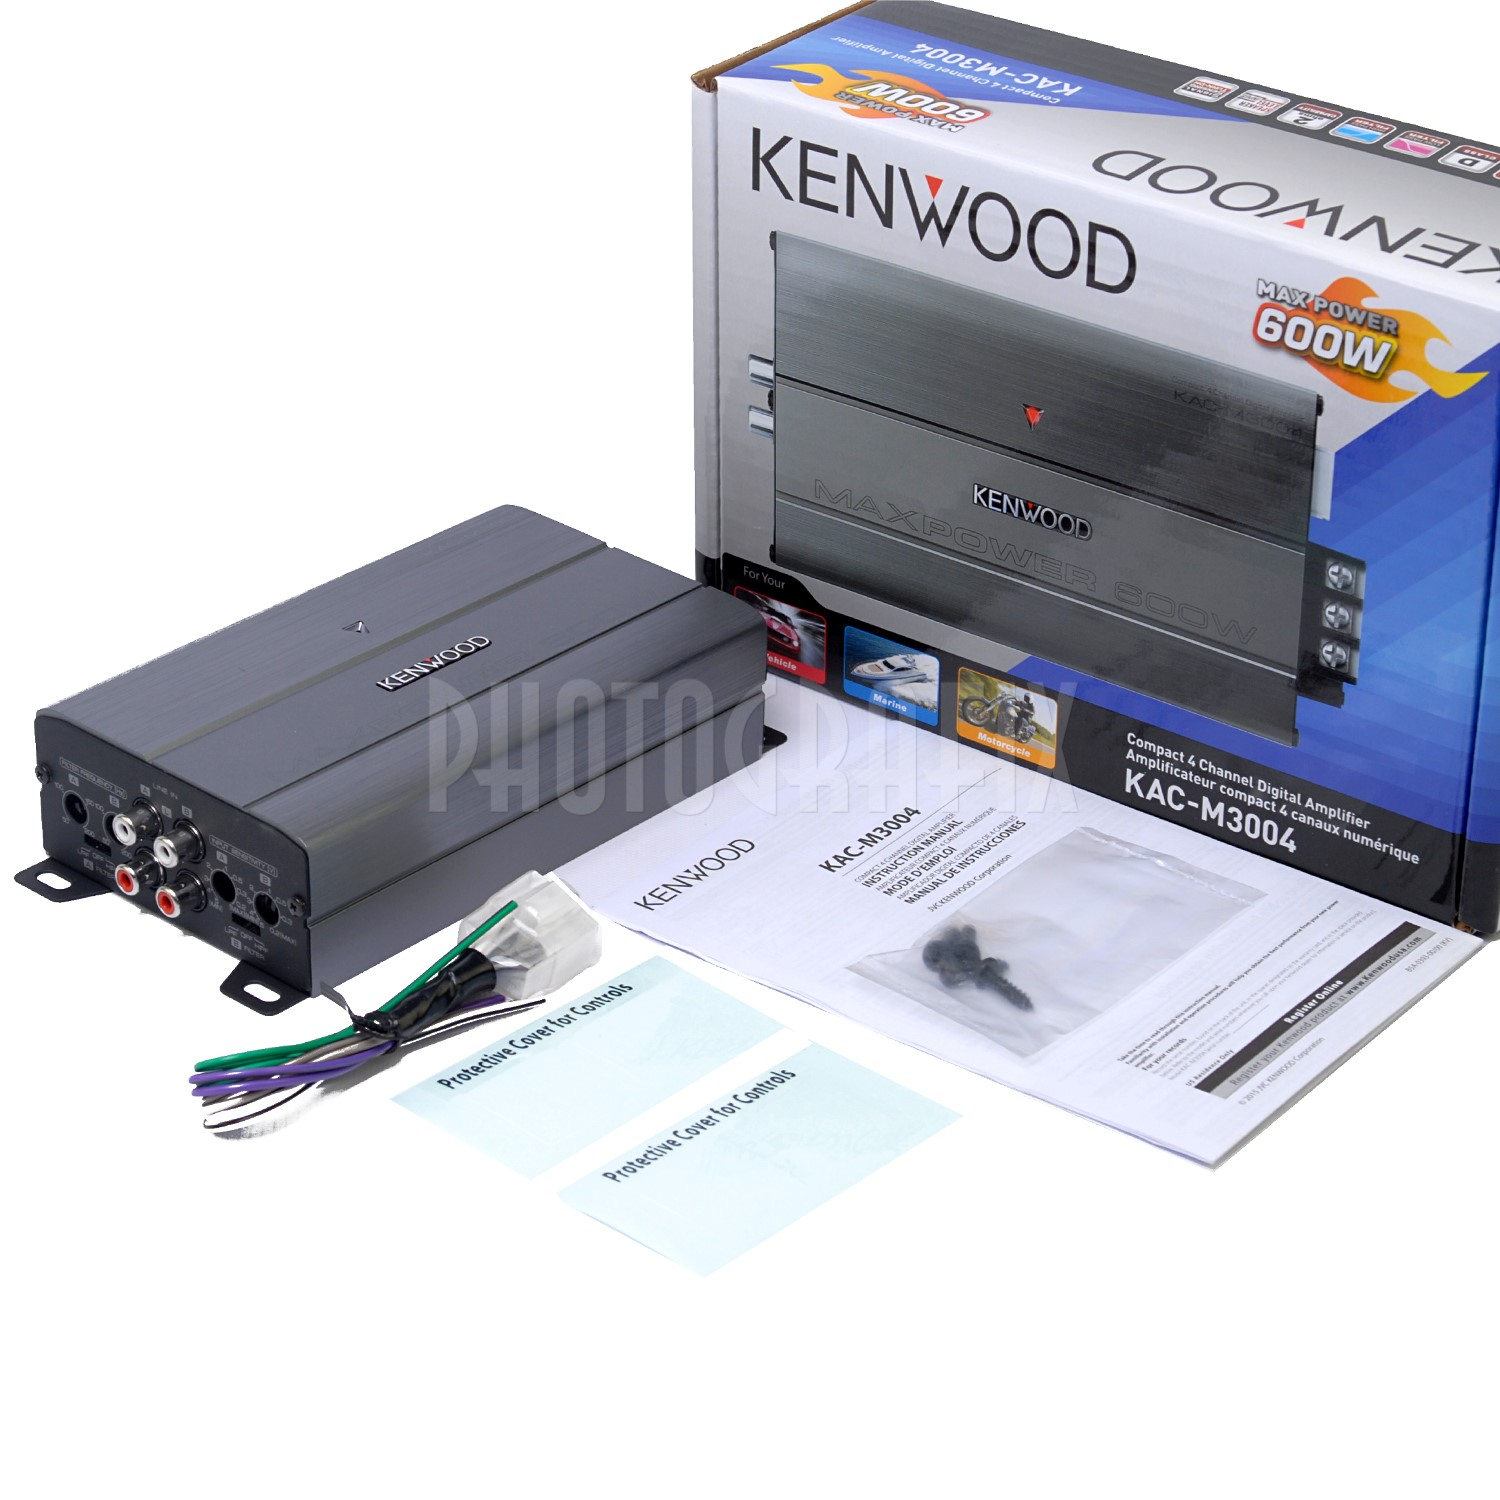 Details over Kenwood KAC-M3004 4 Channel 600w Max Marine Boat Compact  Amplifier AMP KACM3004